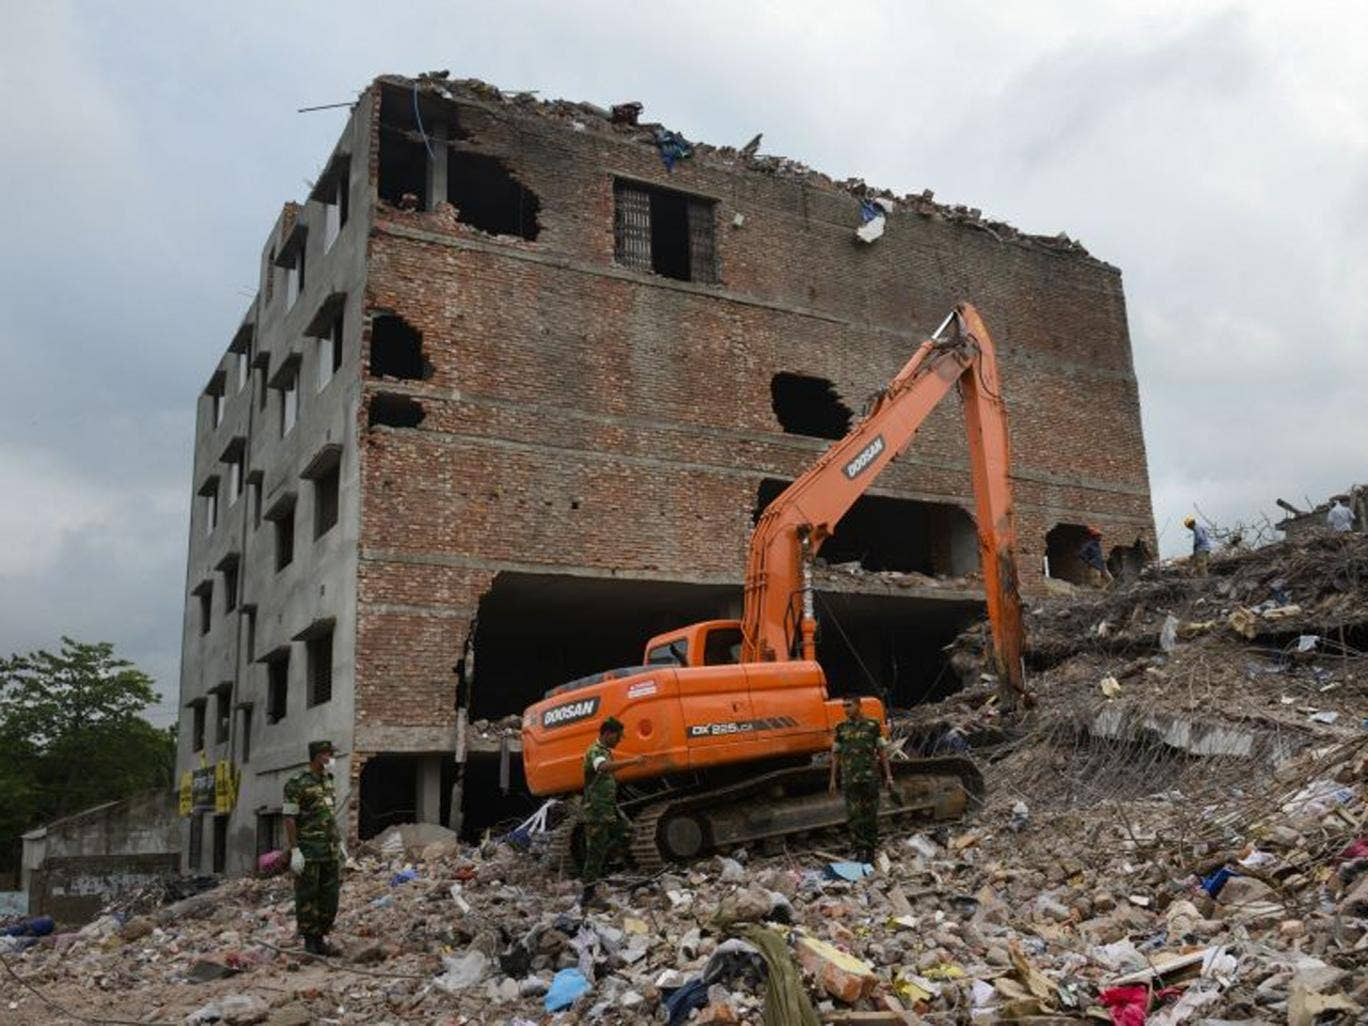 Workers and army personnel use heavy machinery to clear the site and recover bodies of victims from the rubble of the garment factory building collapse near Dhaka, Bangladesh